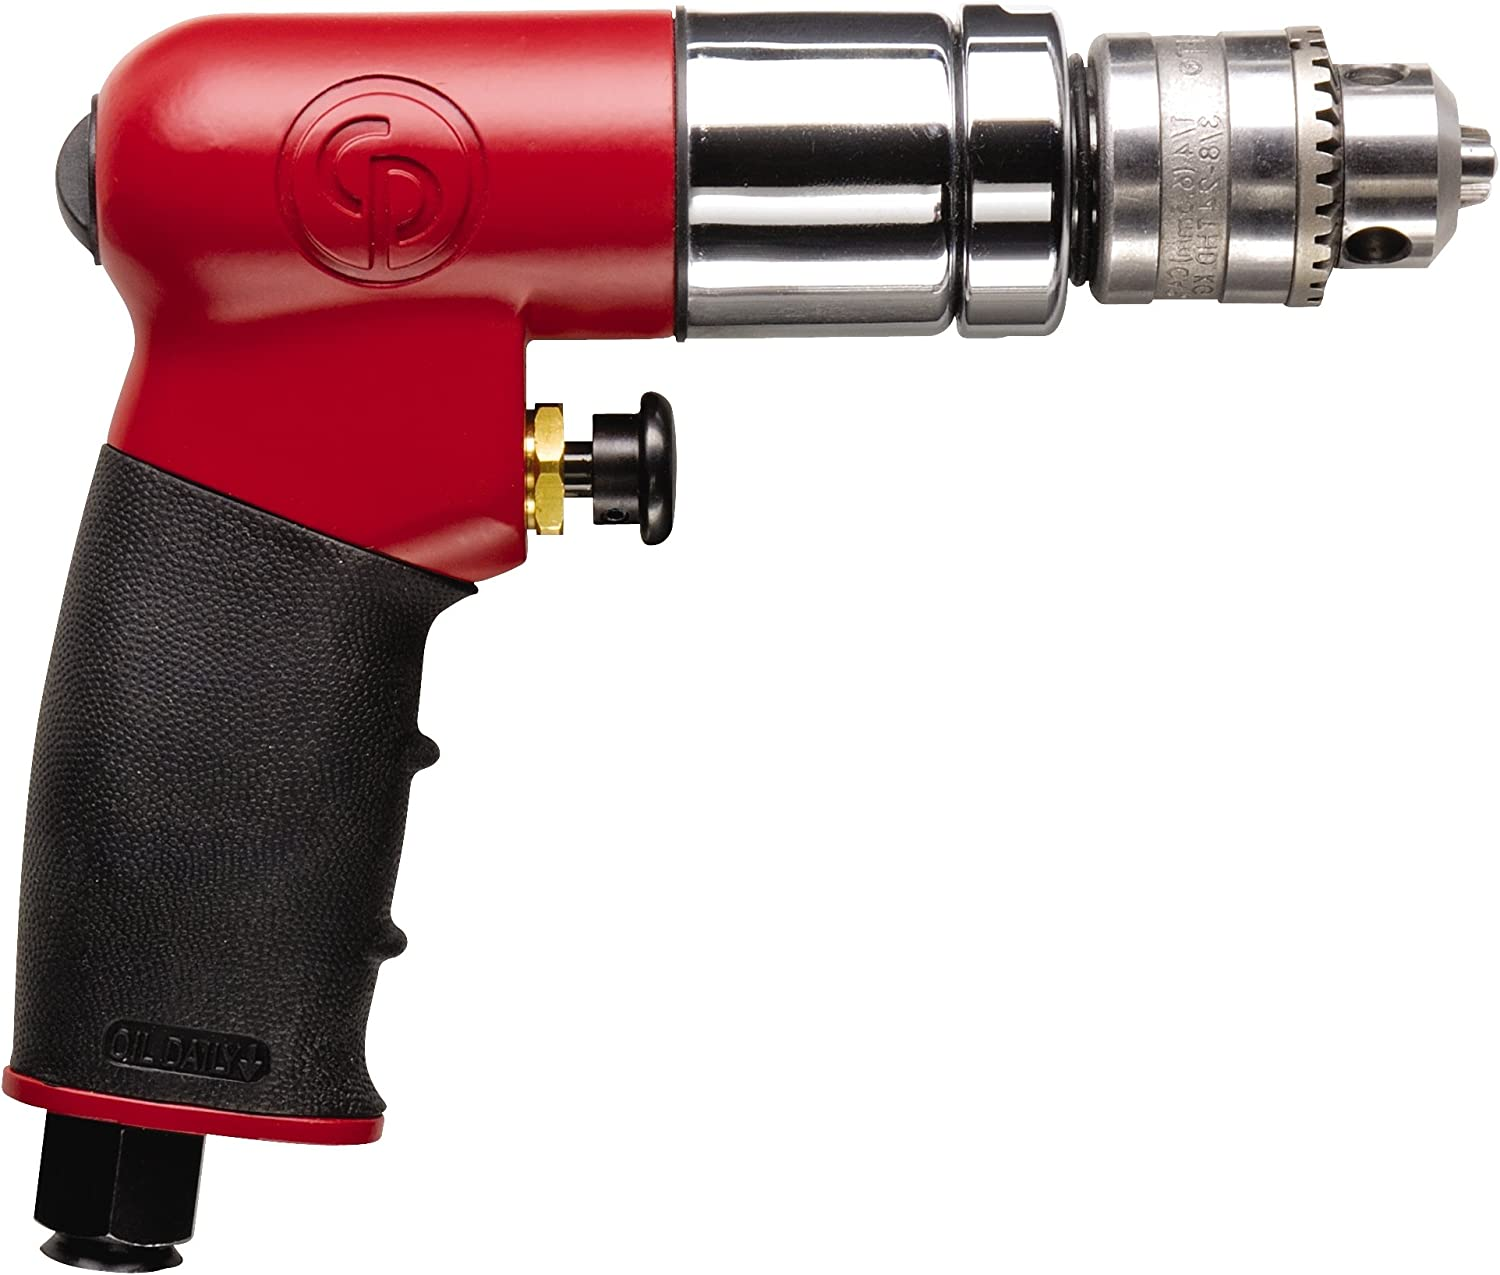 New Florida Pneumatic High Speed Drill and High Speed Sander